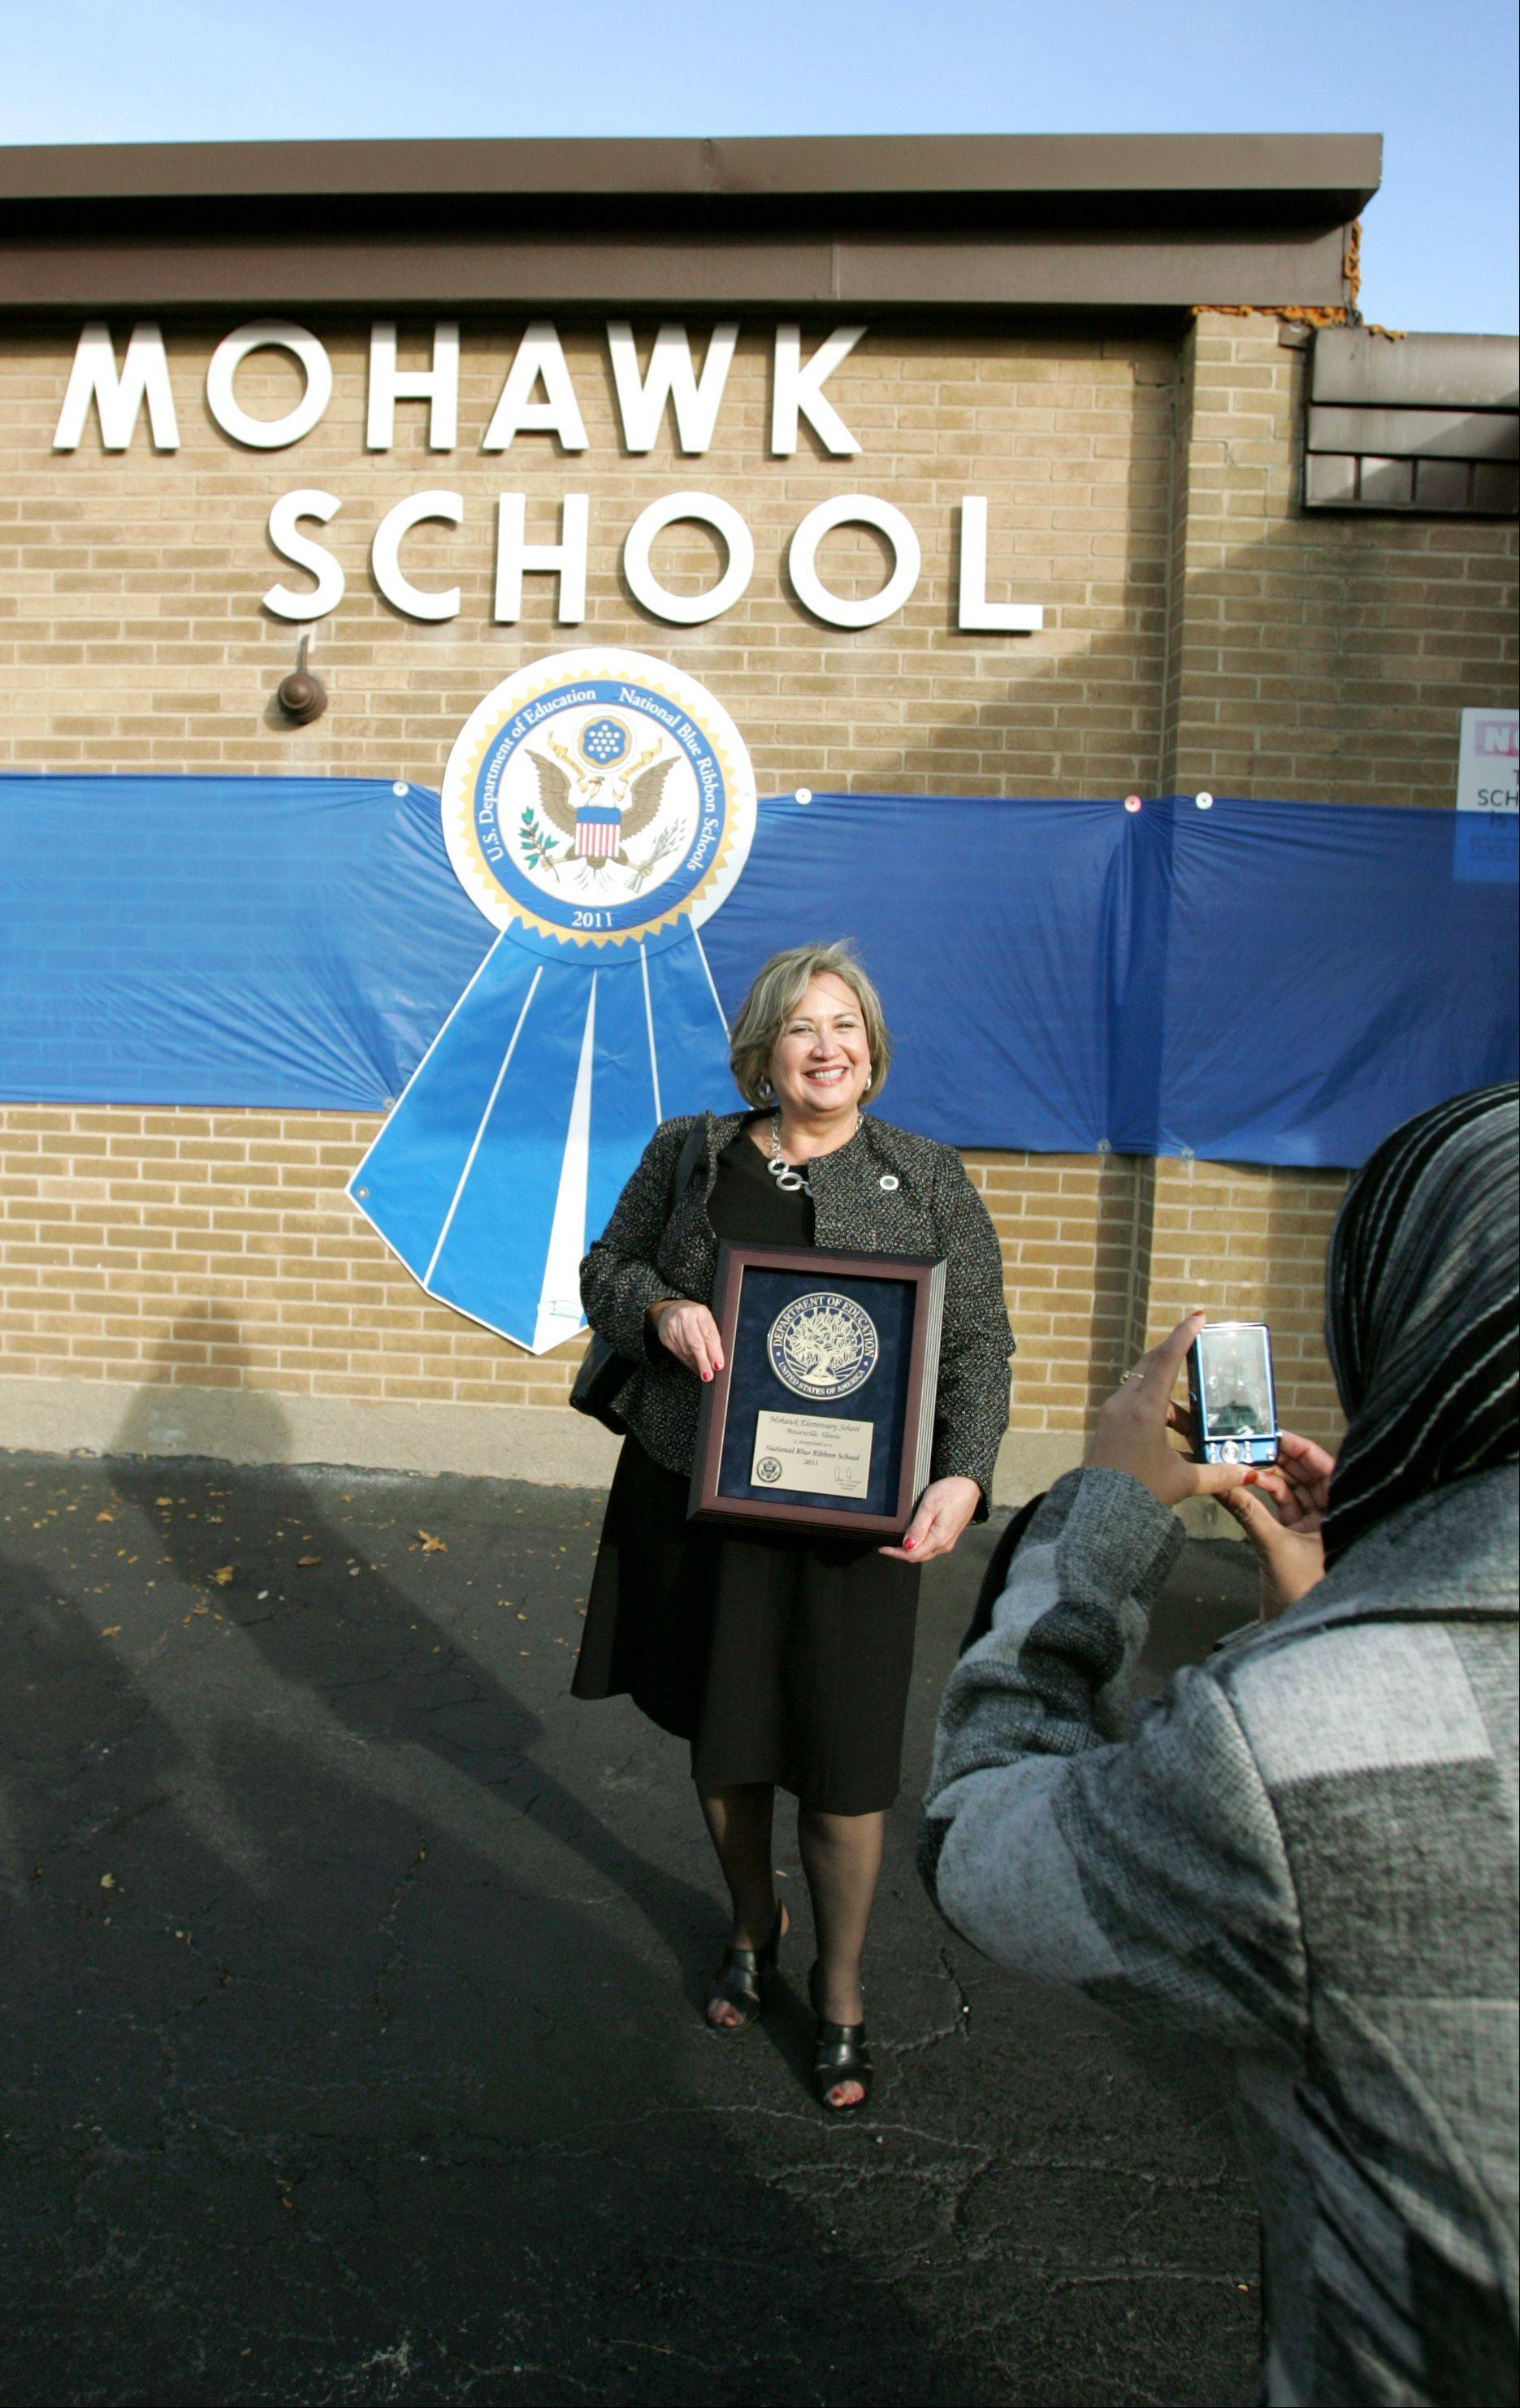 """We're not stopping here,"" Mohawk Elementary School Principal Madelyn Devers said after her school won the 2011 National Blue Ribbon Award."